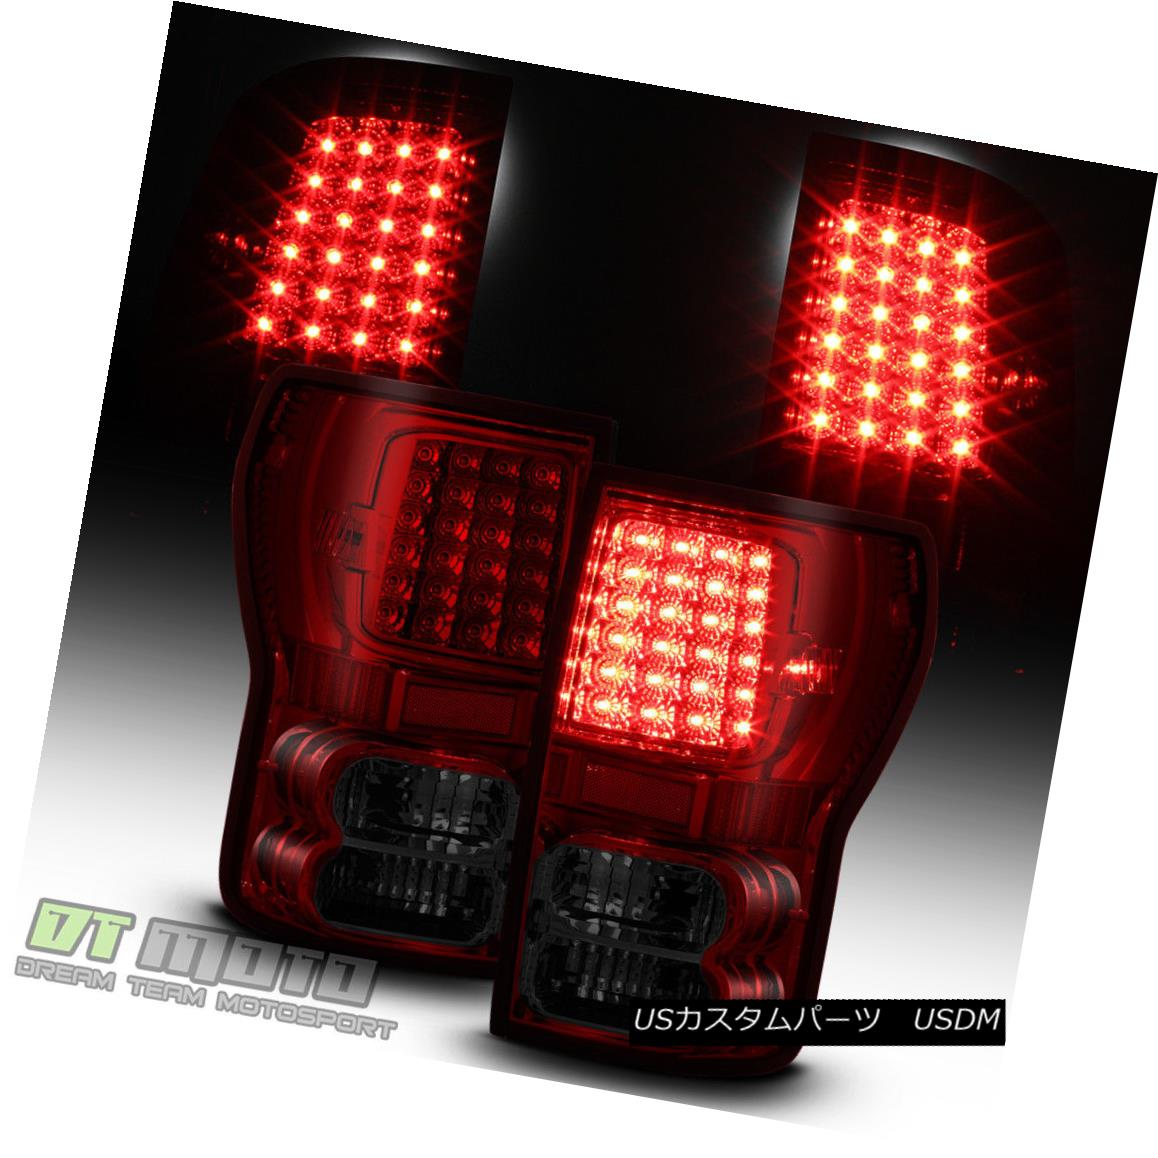 テールライト Tail 2007-2013 Toyota Tundra Tundra Red Smoked Smoked LED Tail Lights Brake Lamps Left+Right Set 2007-2013トヨタトンドラレッドスモークLEDテールライトブレーキランプ左+右セット, STAB BLUE ENTERPRISE:6258b66e --- officewill.xsrv.jp